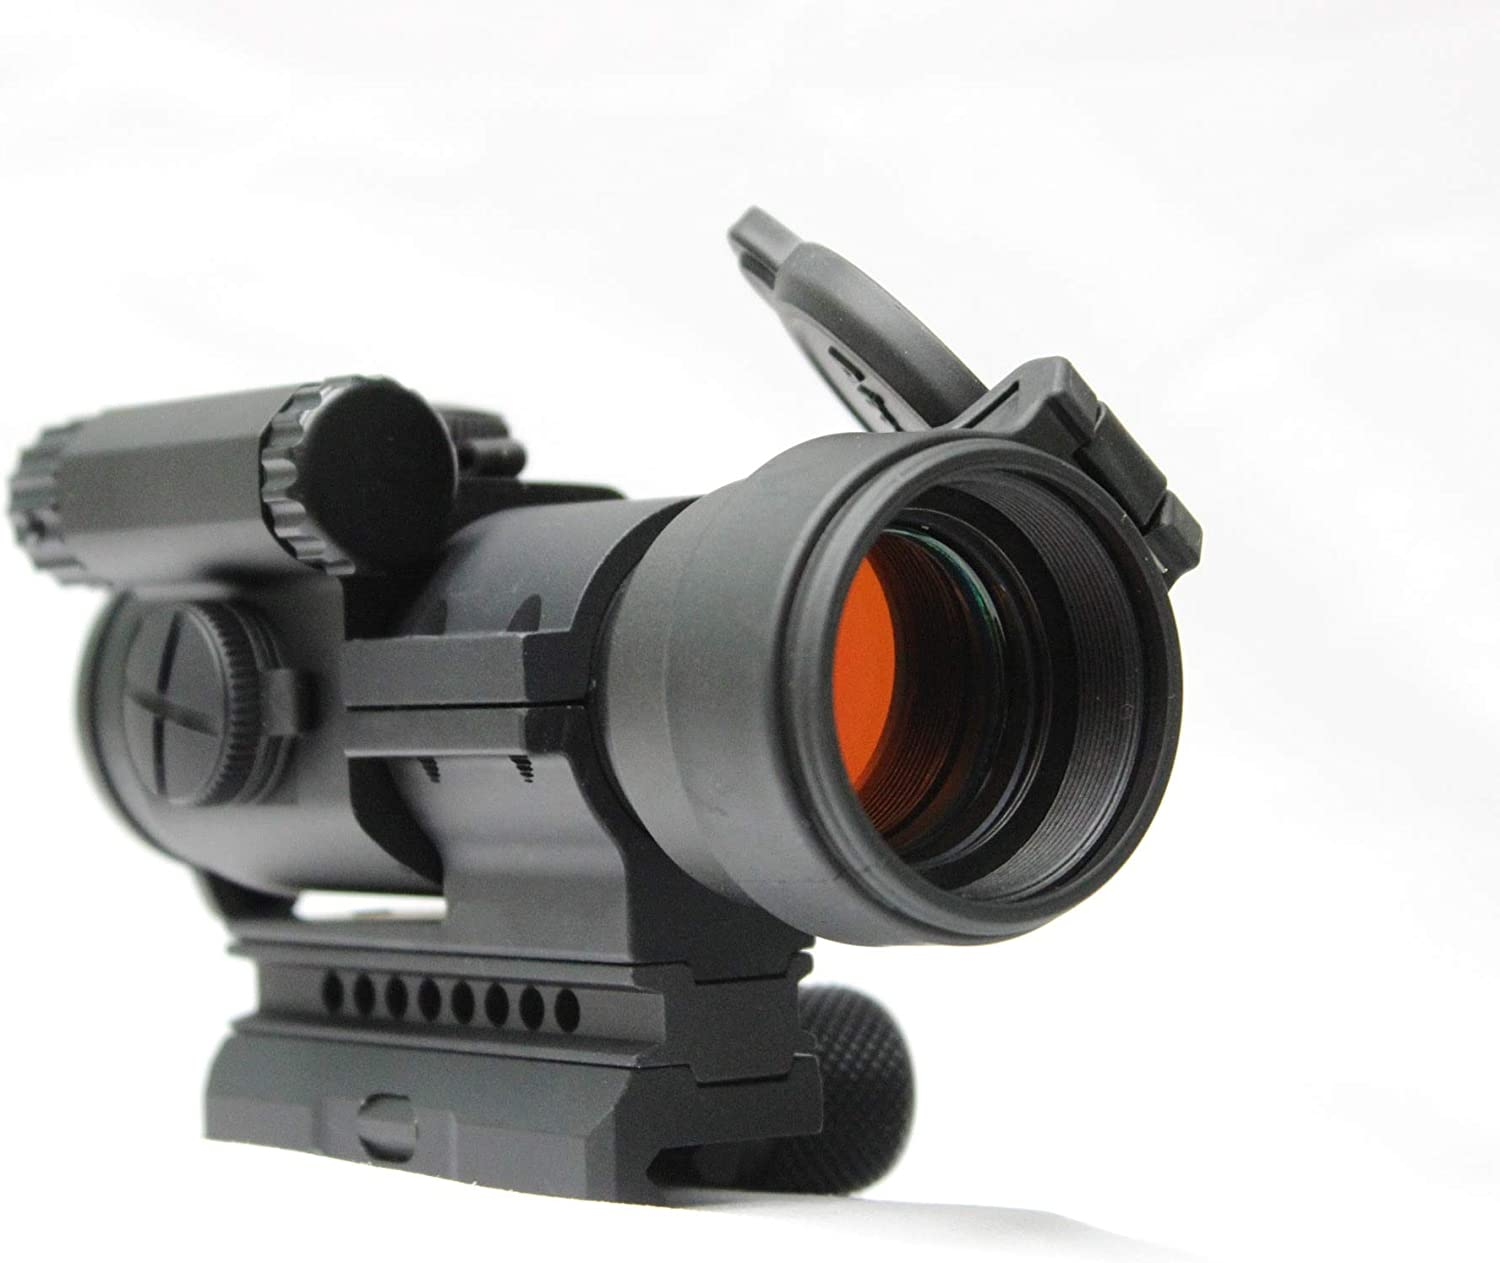 2. Aimpoint Pro Red Dot Reflex Sight